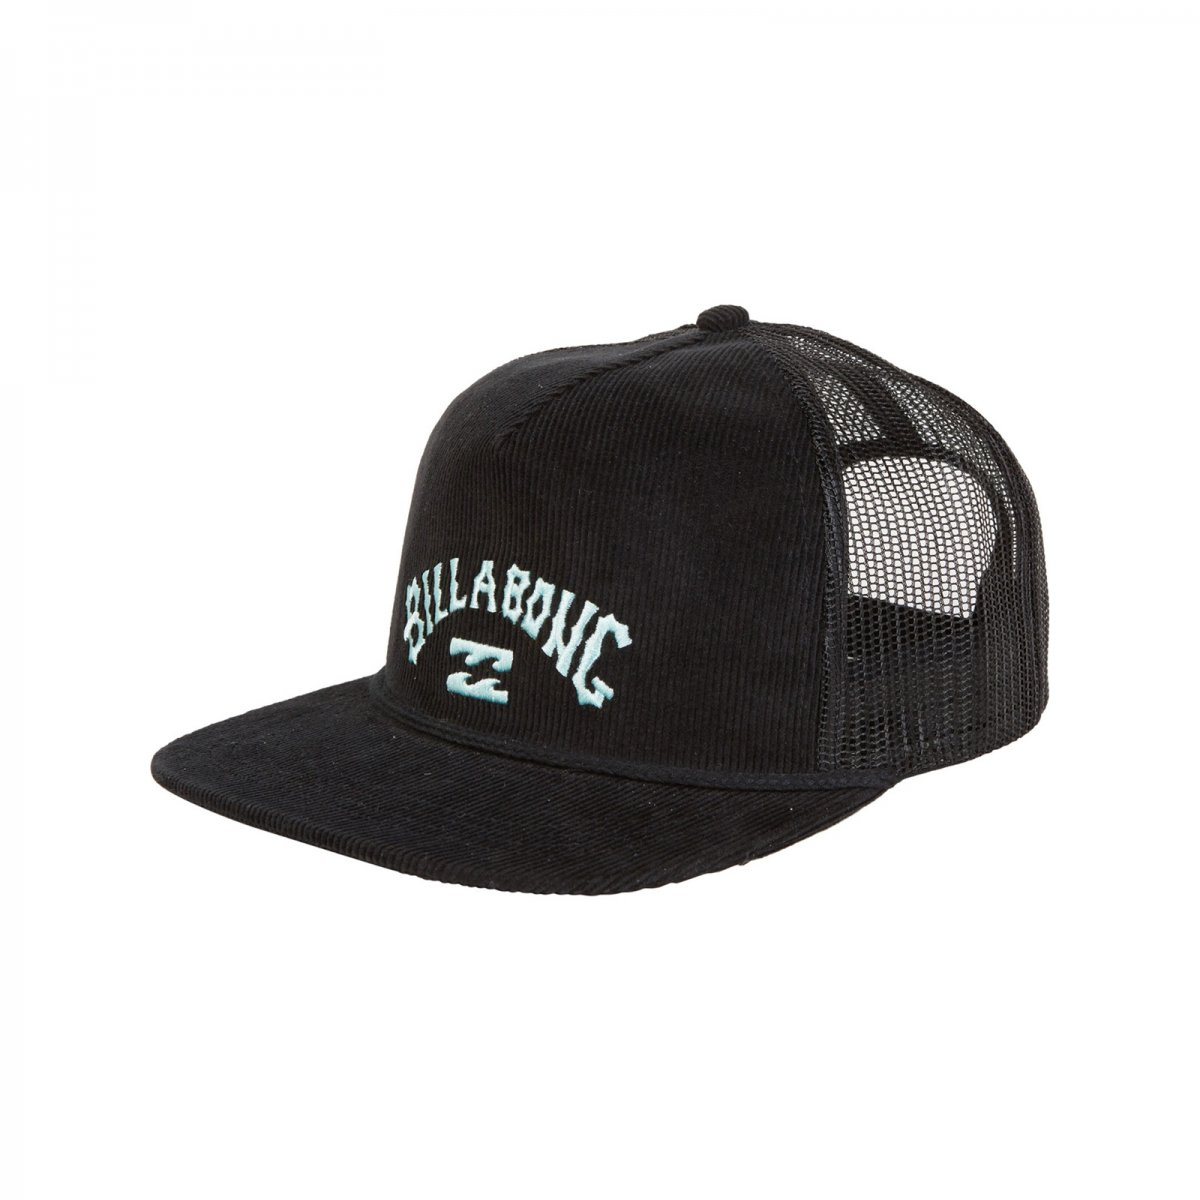 ALLIANCE TRUCKER